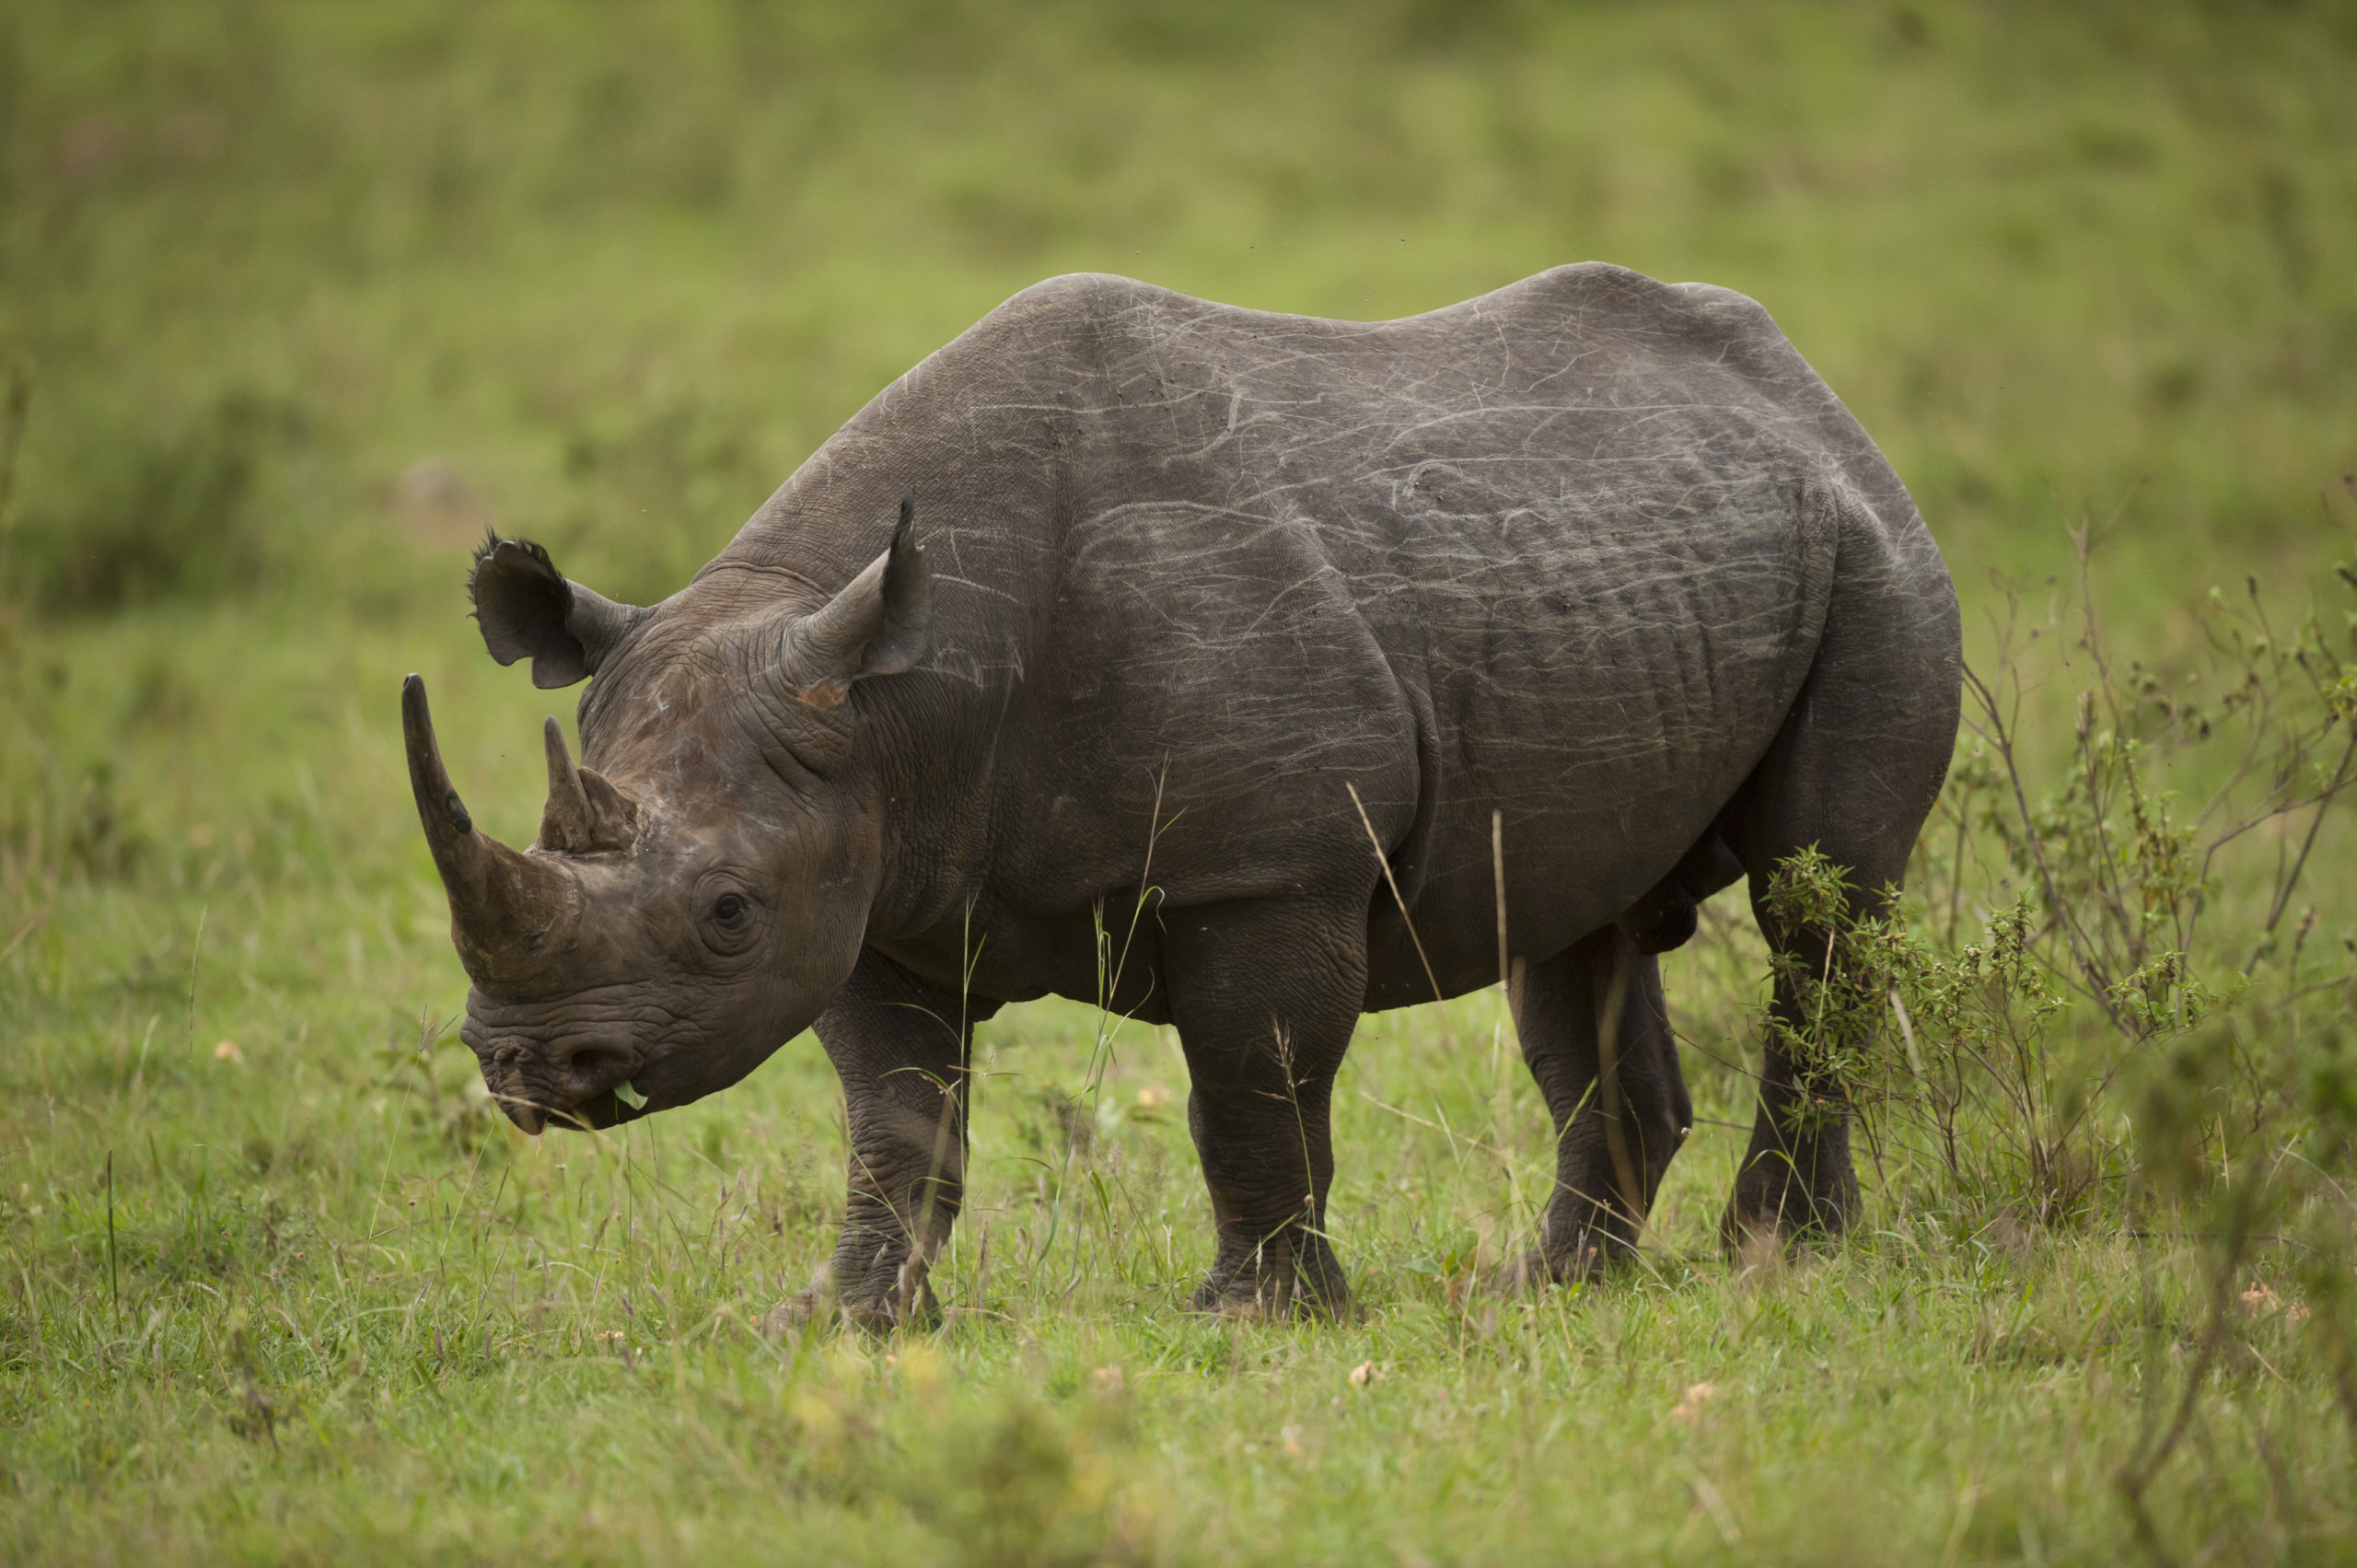 A Black rhinoceros standing in a green field of grass and shrubs